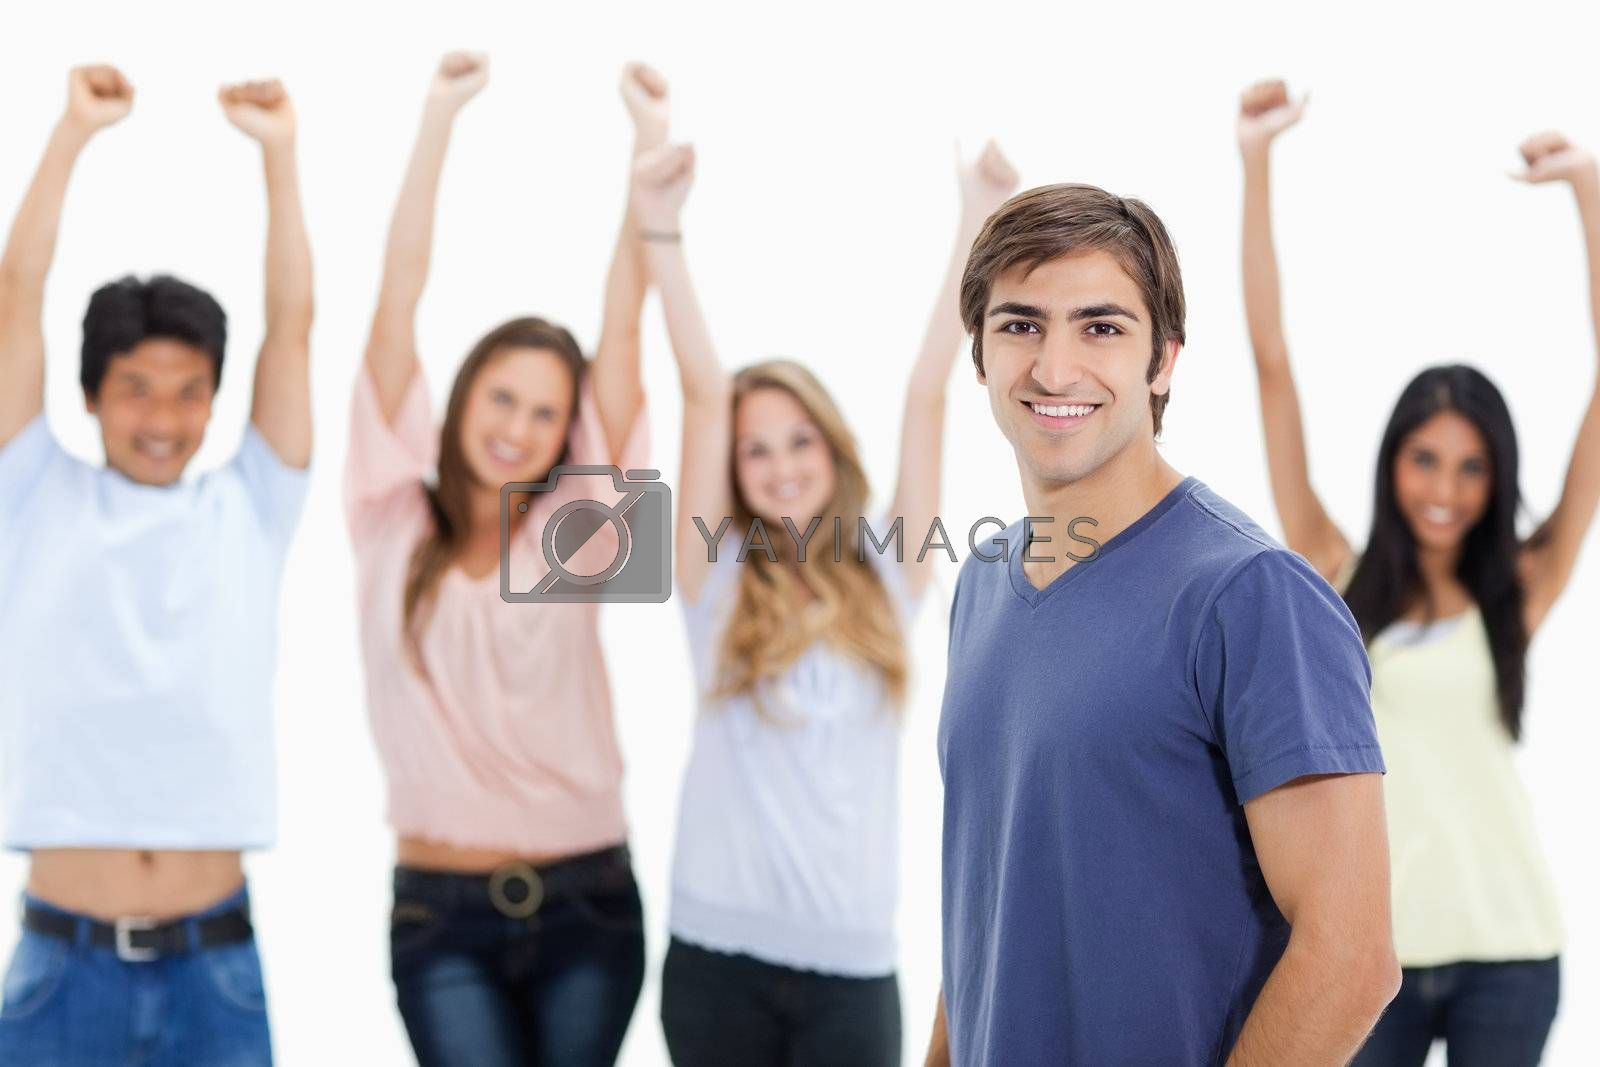 Smiling man with people behind him raising their arms against white background